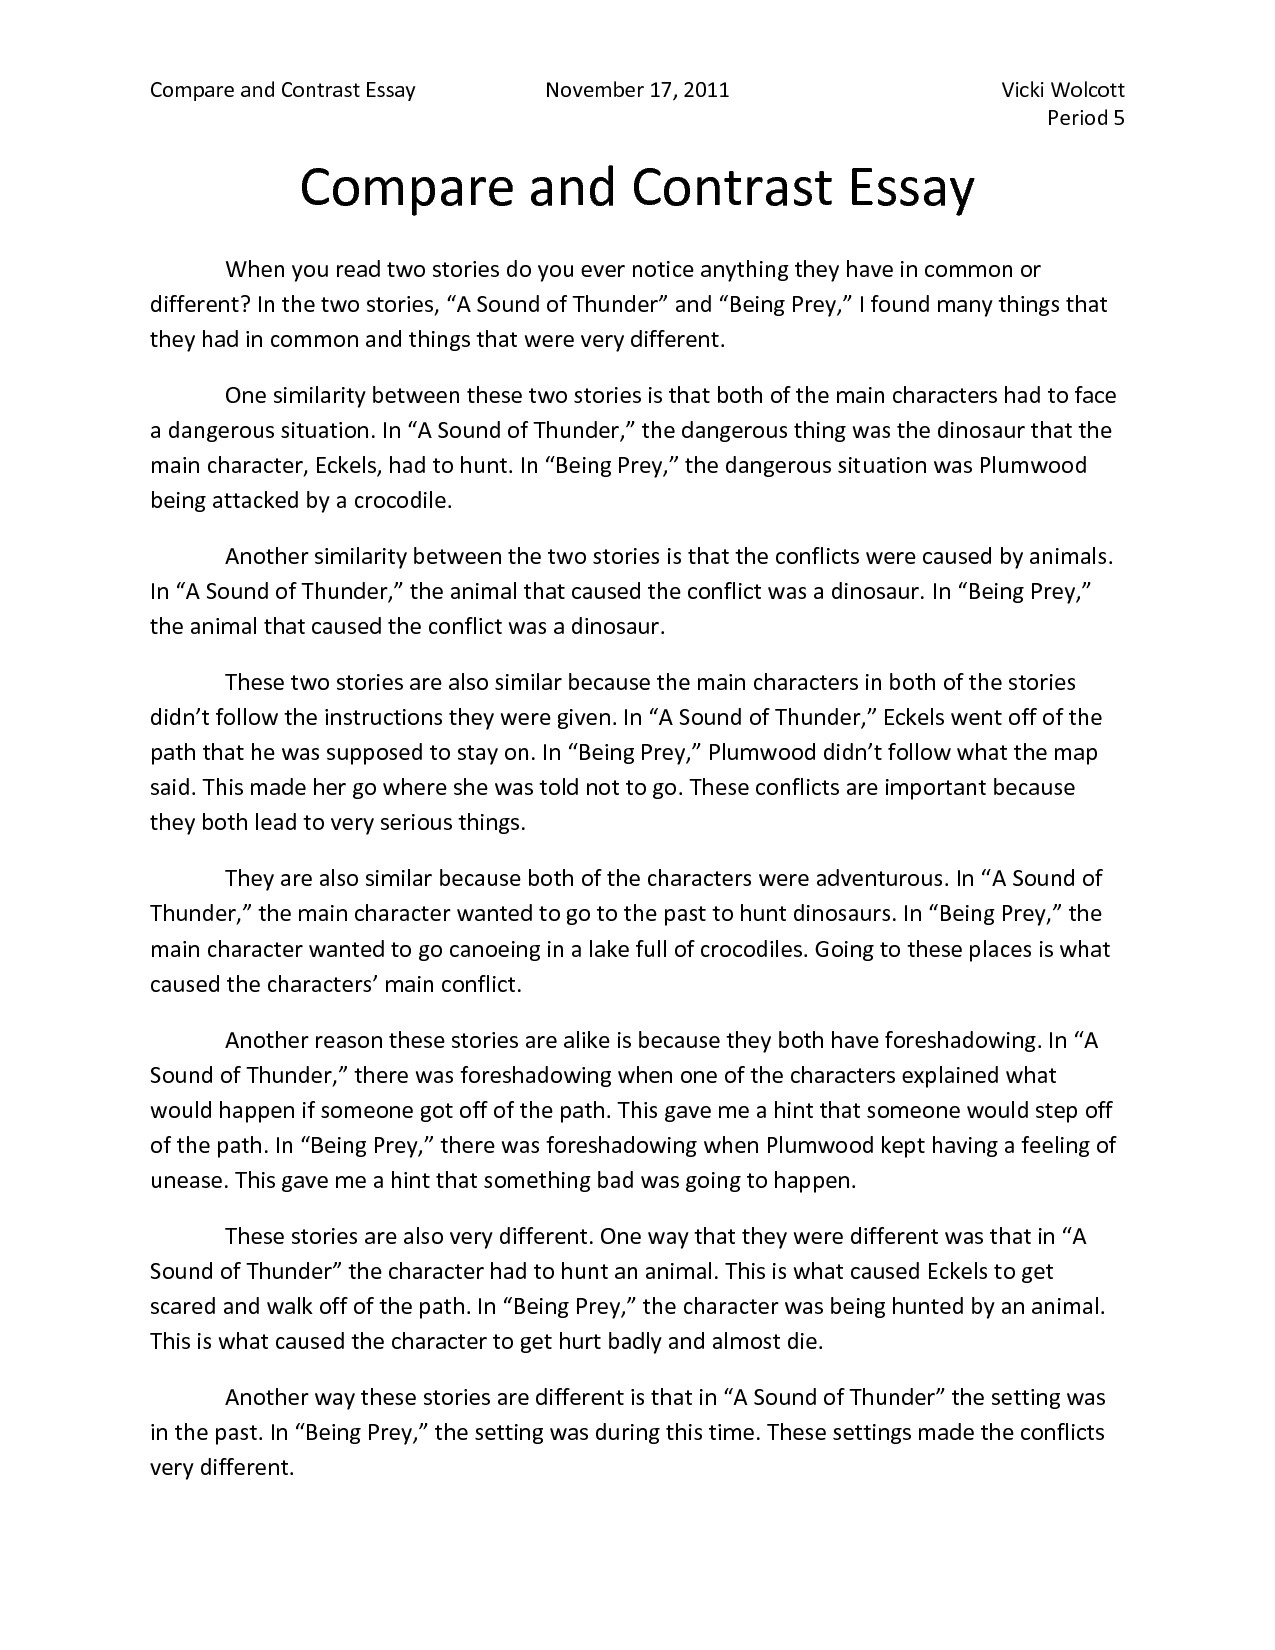 005 essay example comparison examples and contrast essays ideas maus